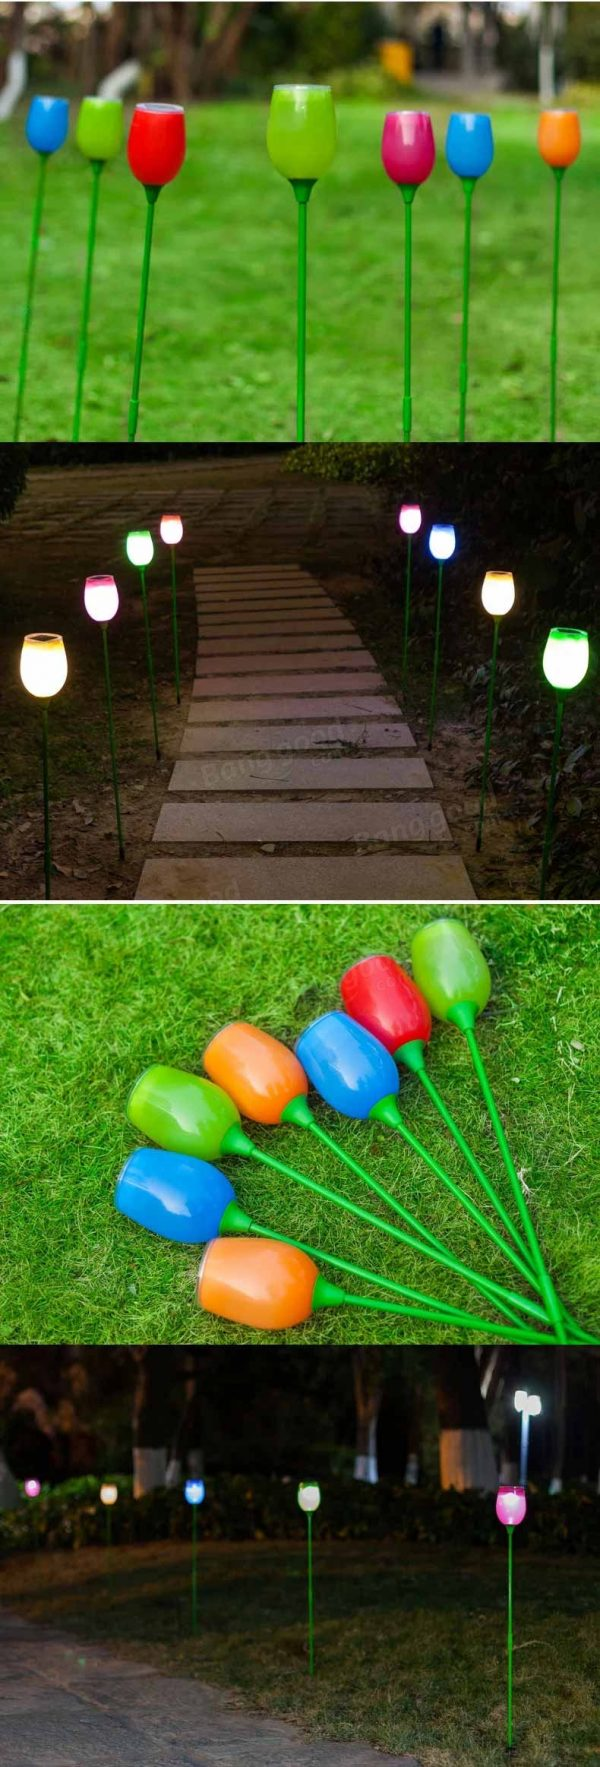 Bore Solar Power Outdoor Tulip Colorful Led Lamp Garden Medium